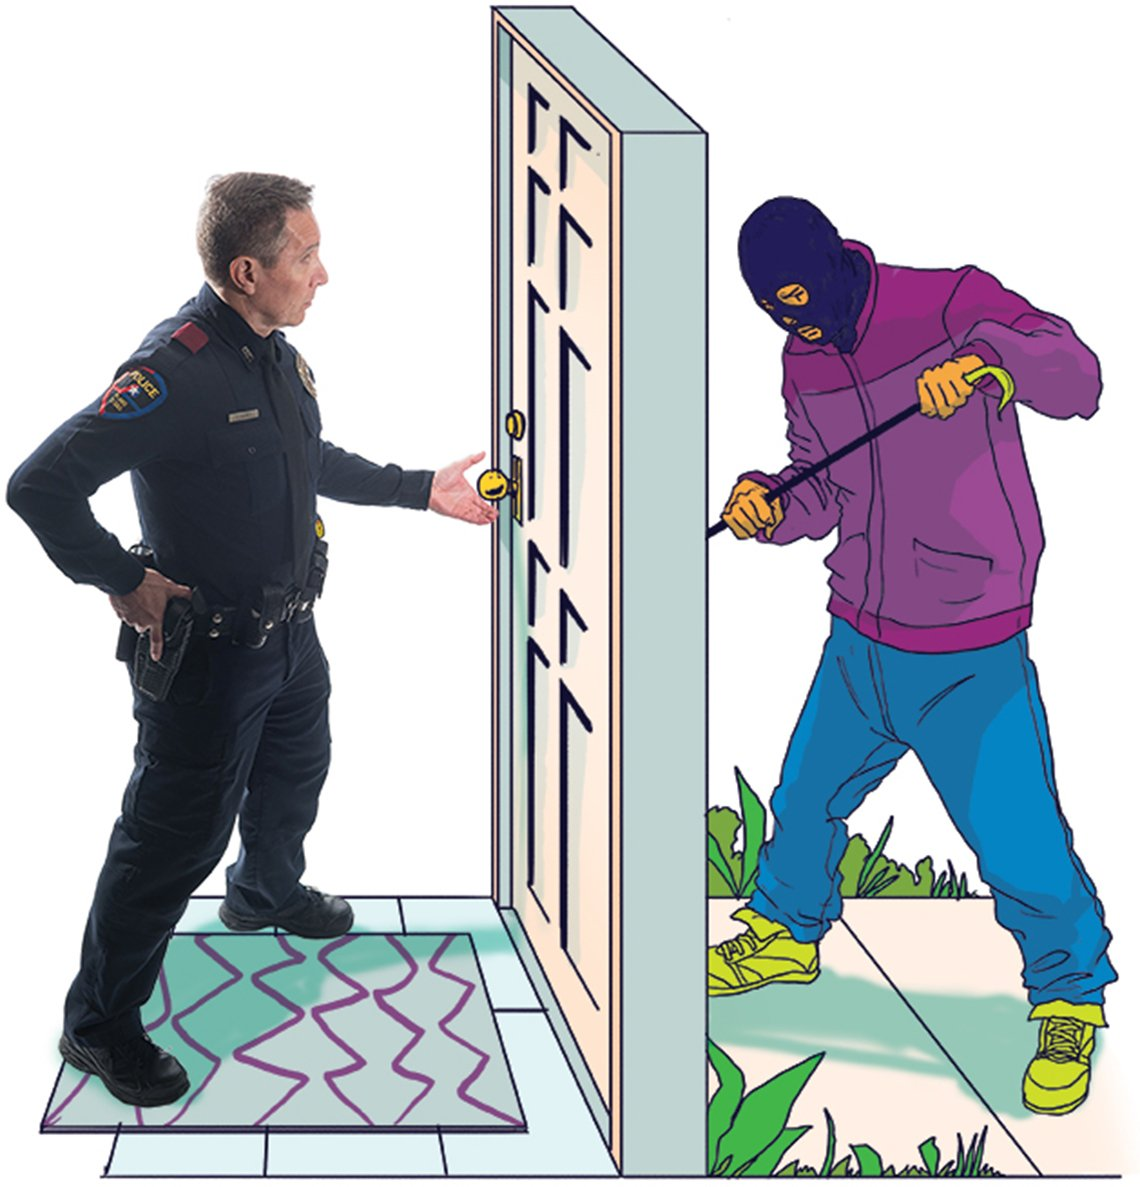 cop stopping a robber at a door